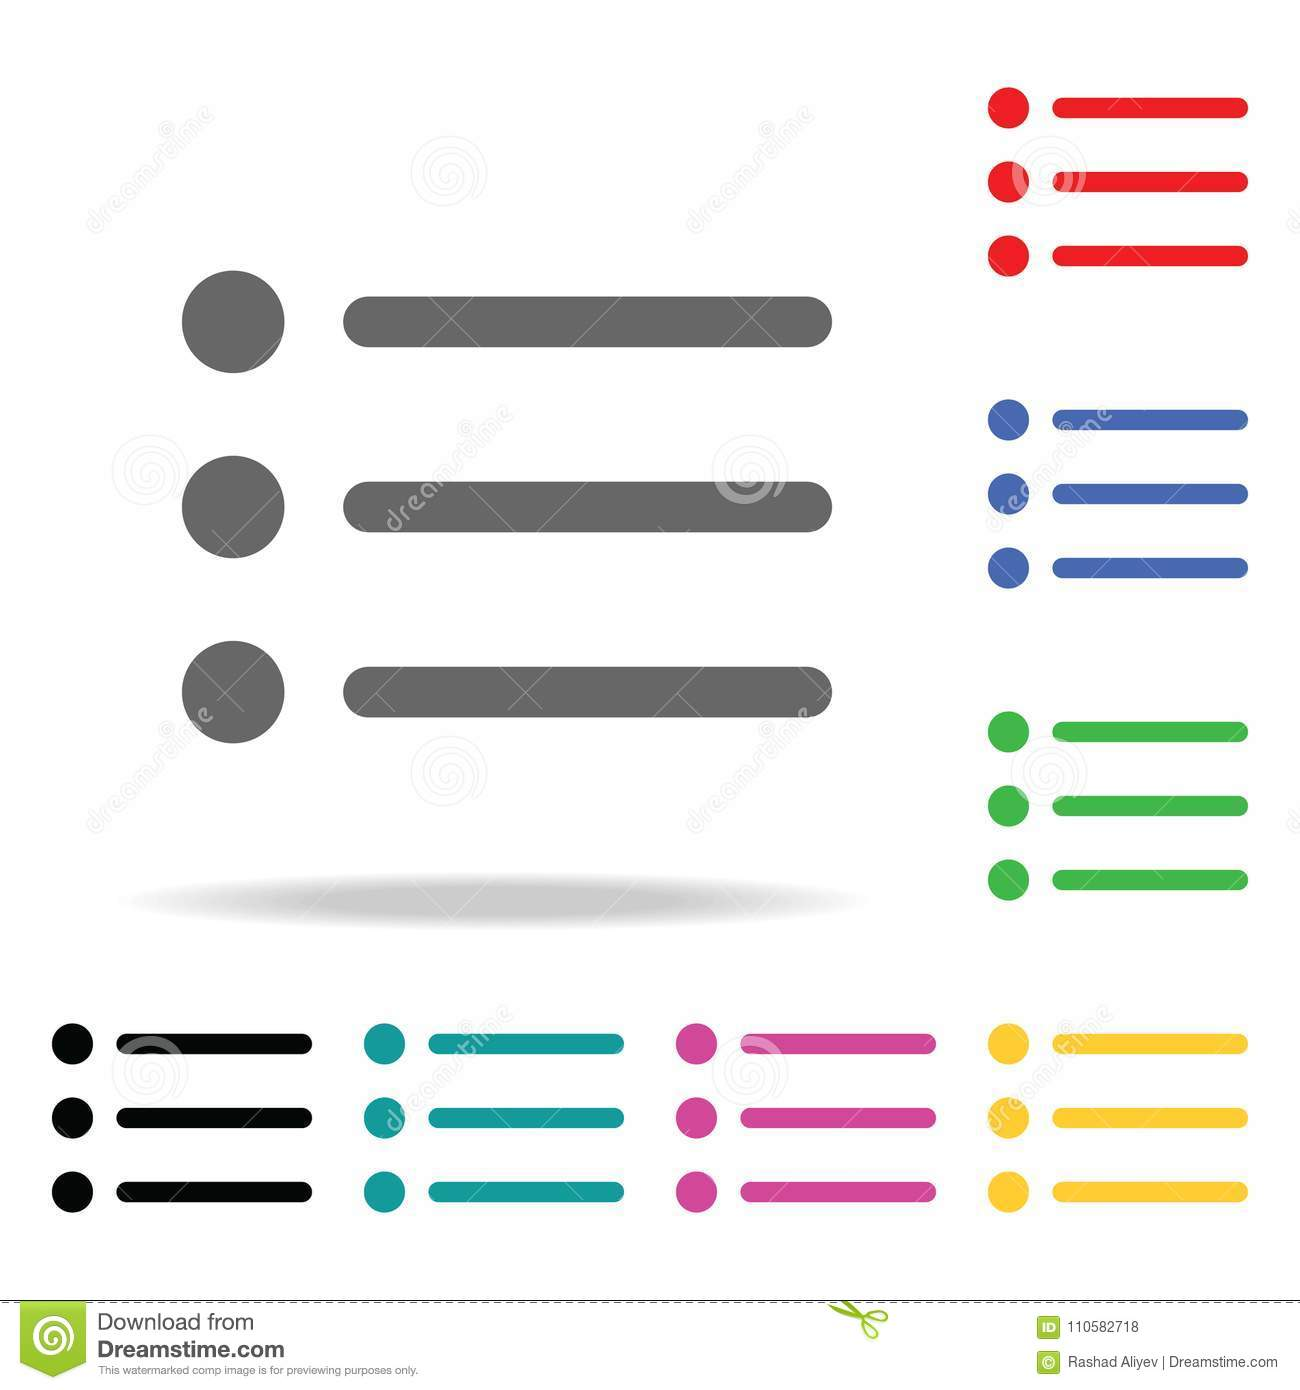 Notes Menu Icon  Elements In Multi Colored Icons For Mobile